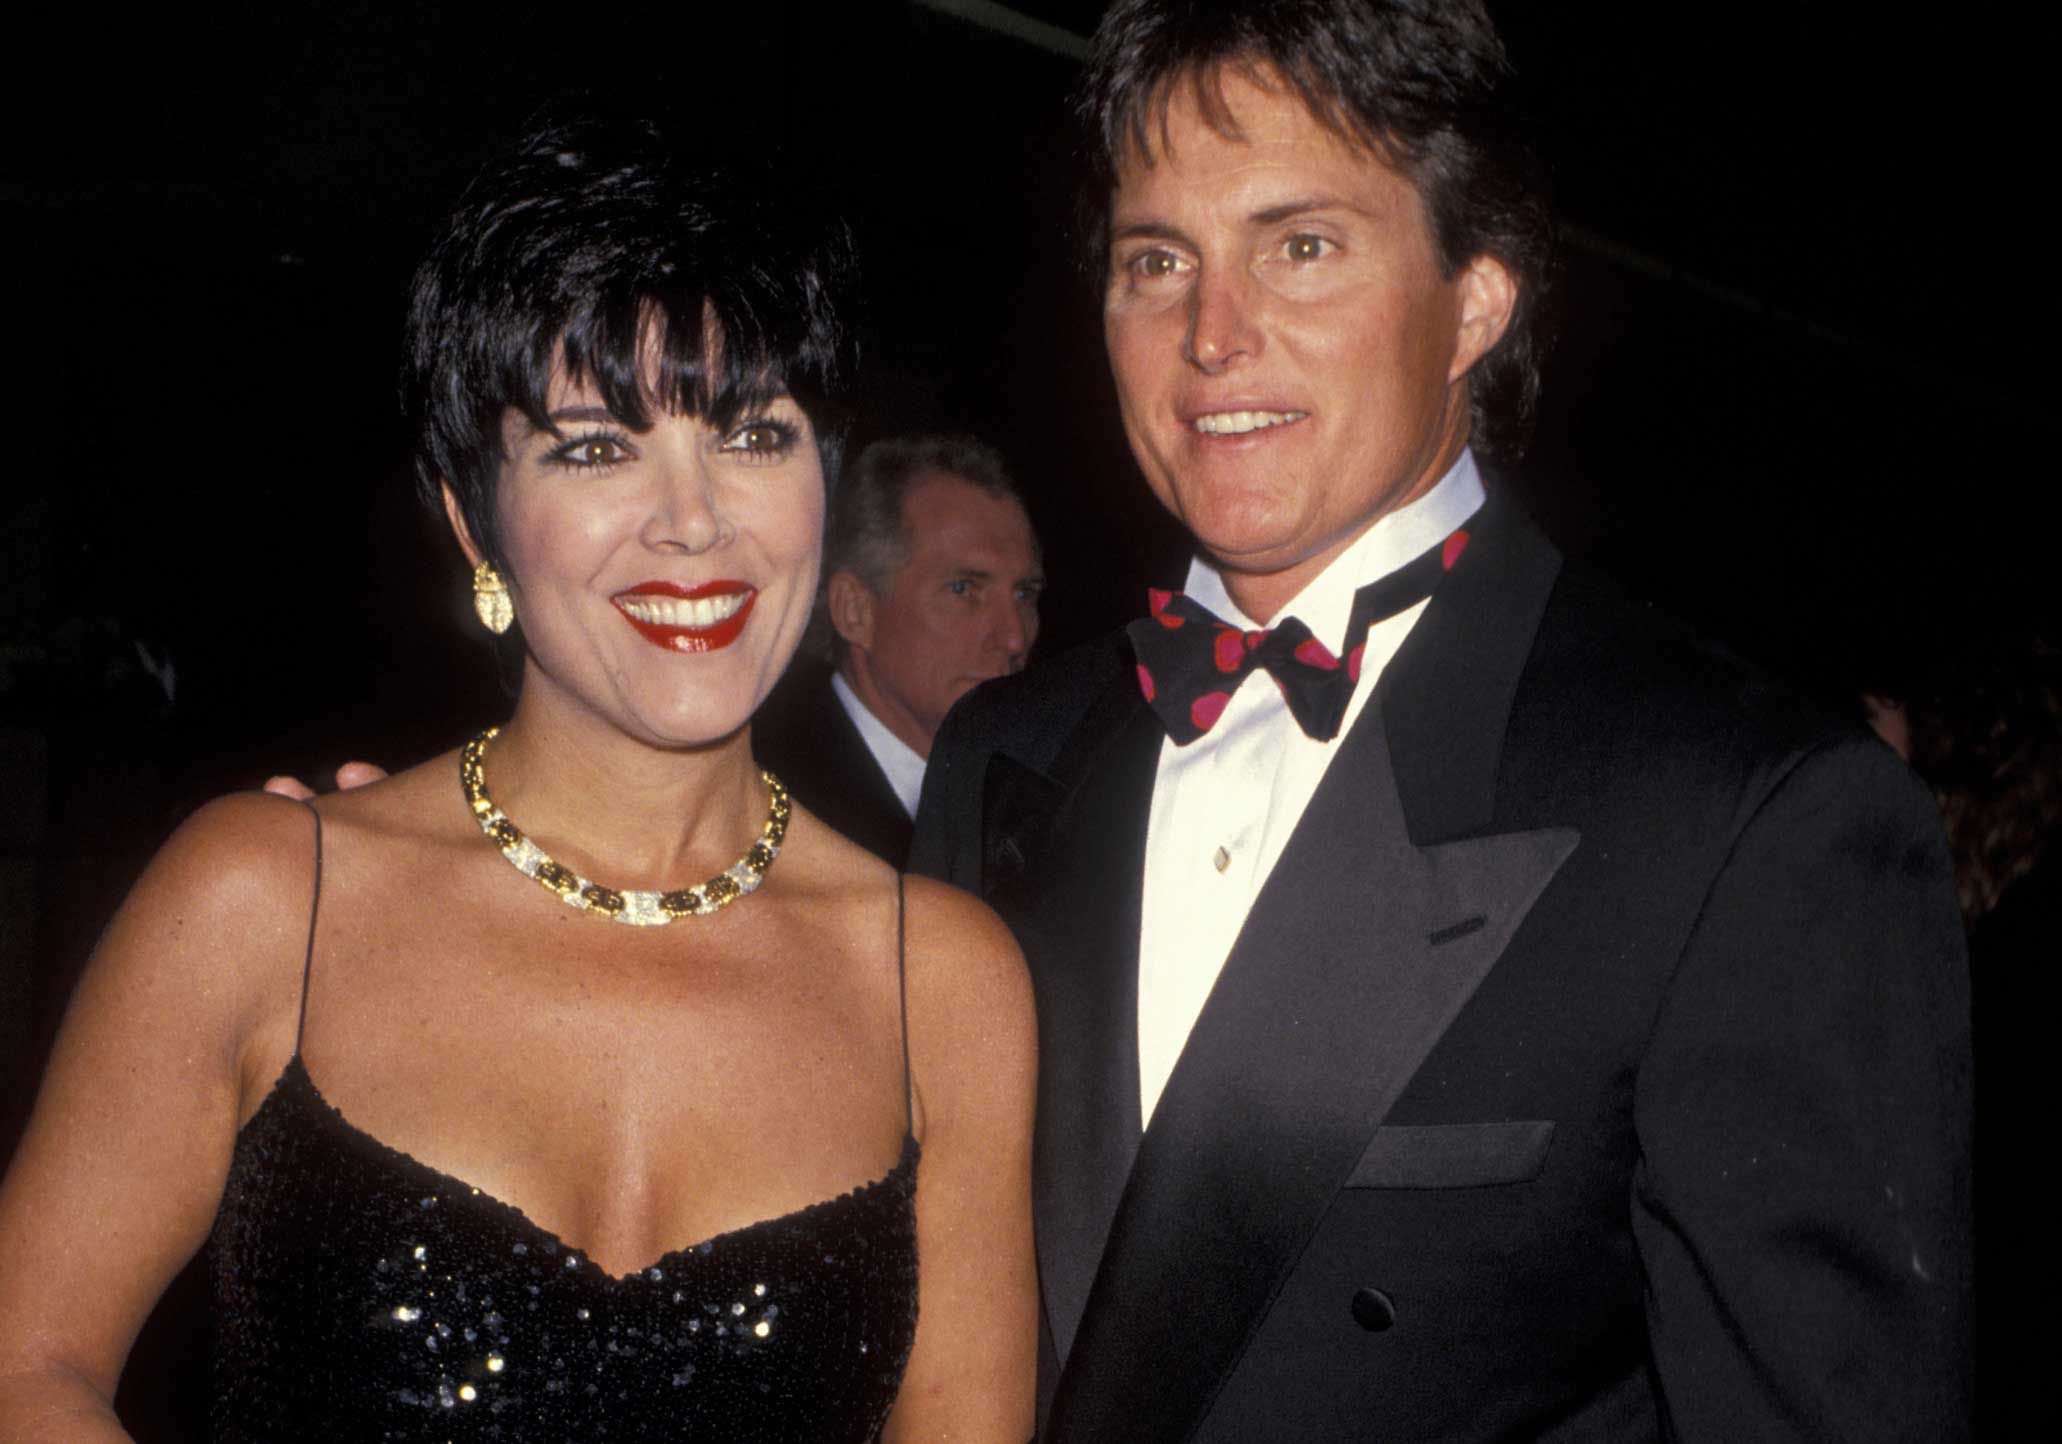 Kris Jenner reveals which daughter will inherit her glorious '80s wardrobe